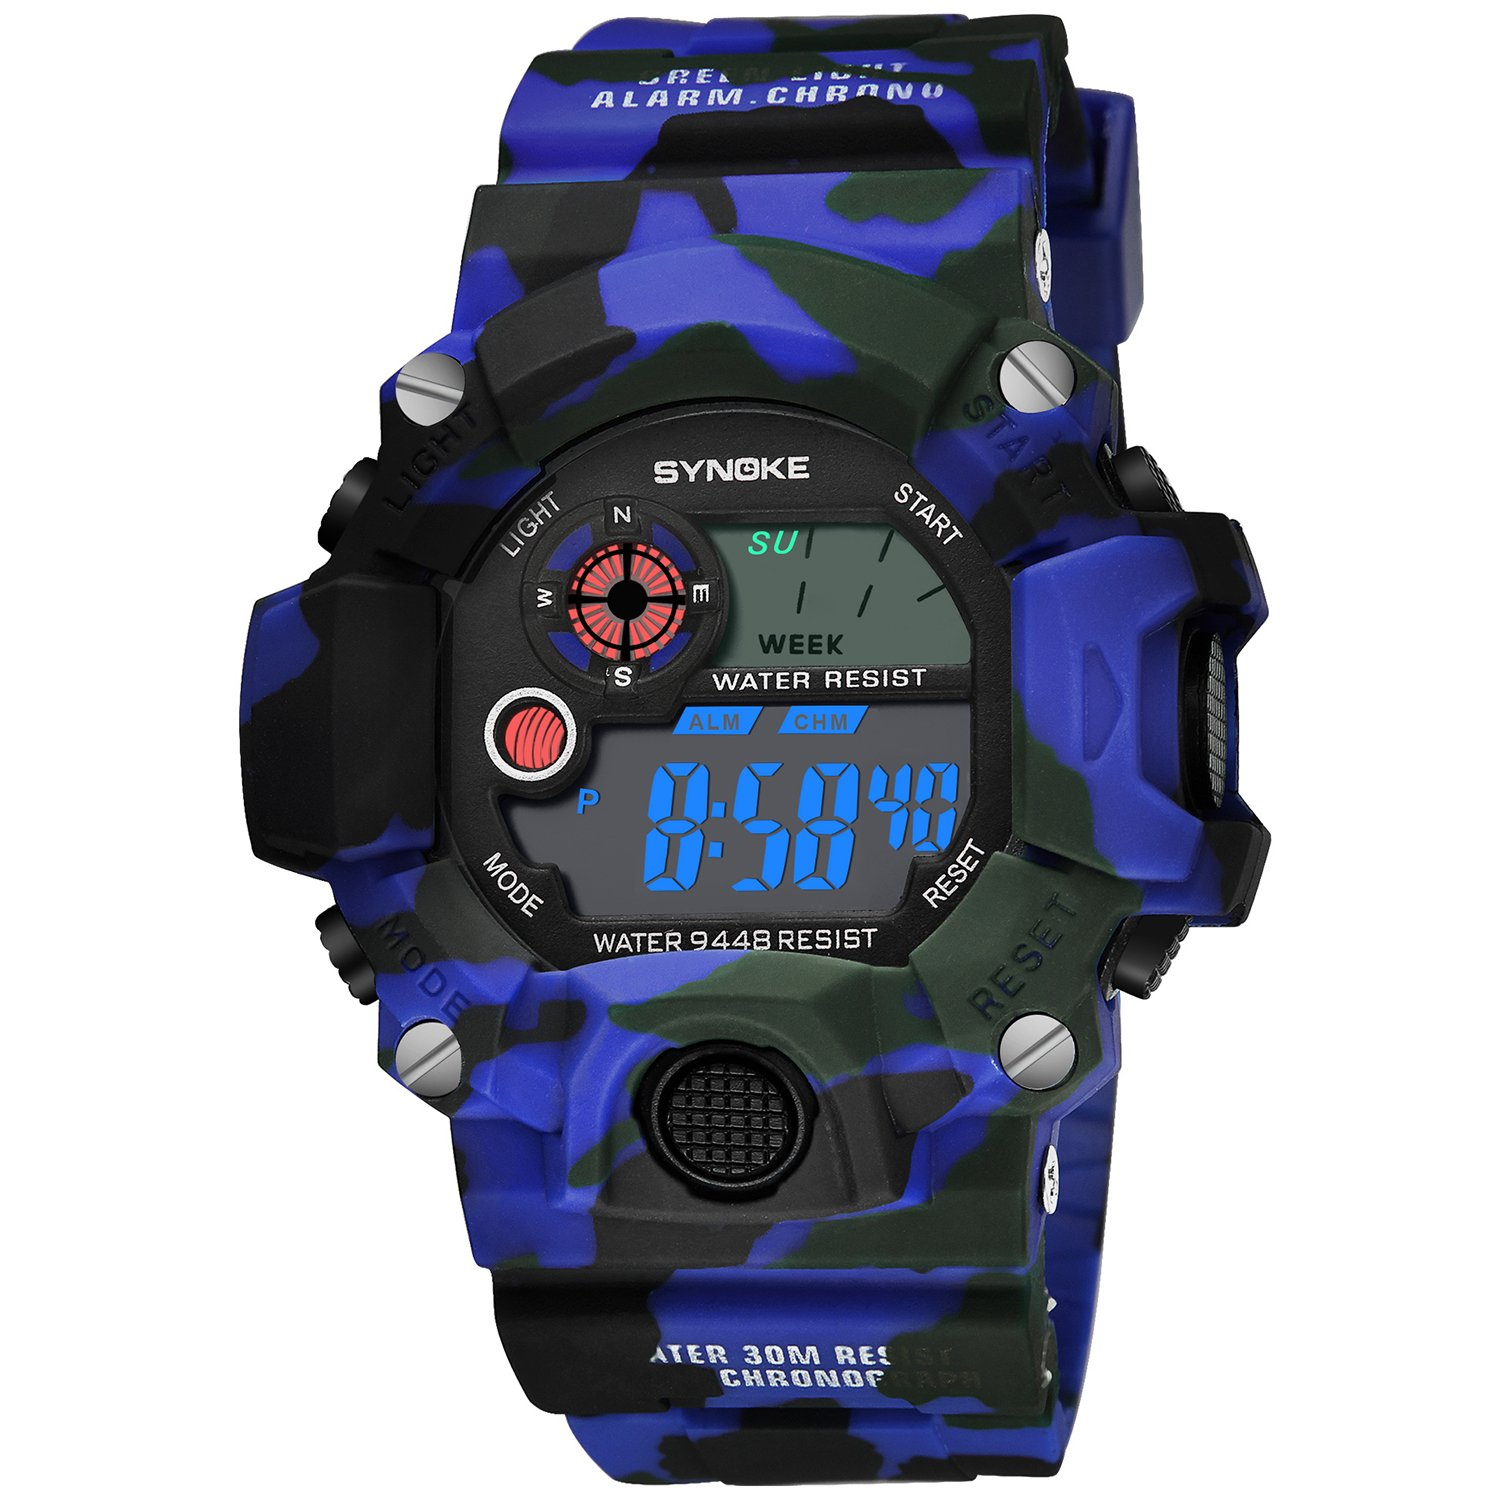 Analog Digital Wrist Watch Quartz Military Wristwatches for Men Luminescent Blue